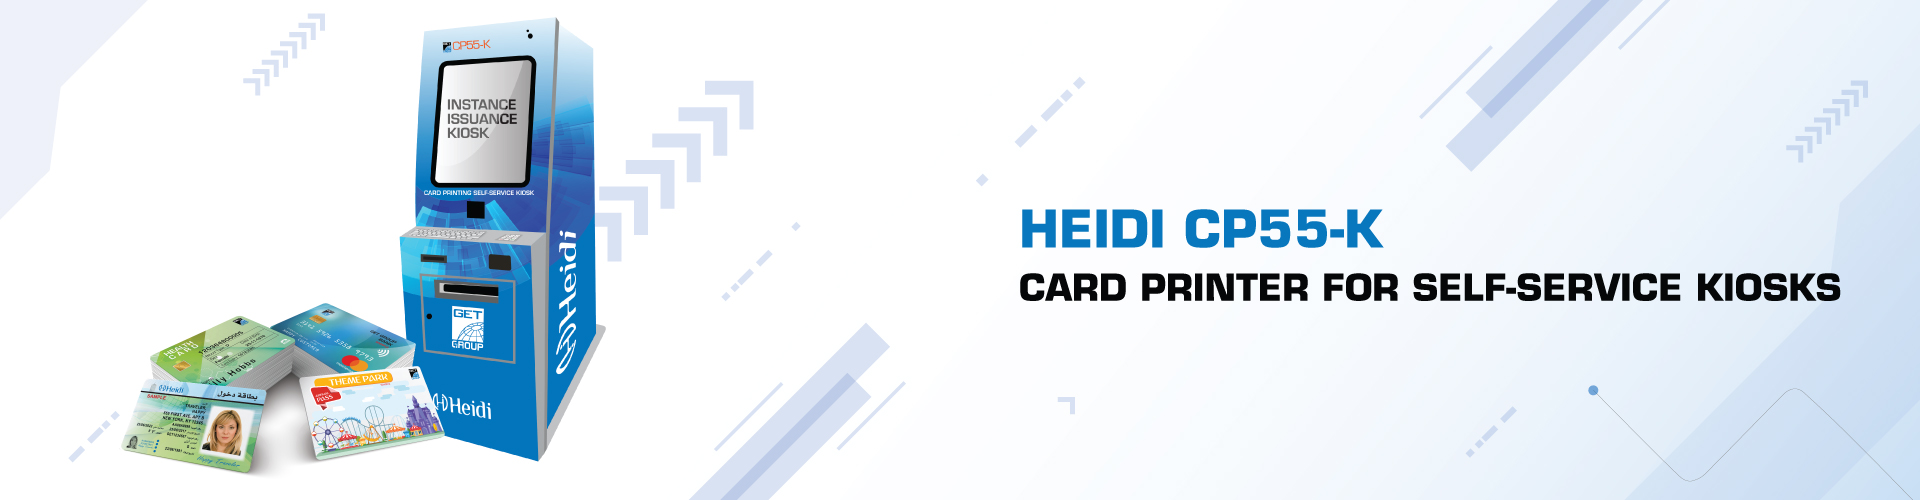 The Heidi CP55 printer line by GET group